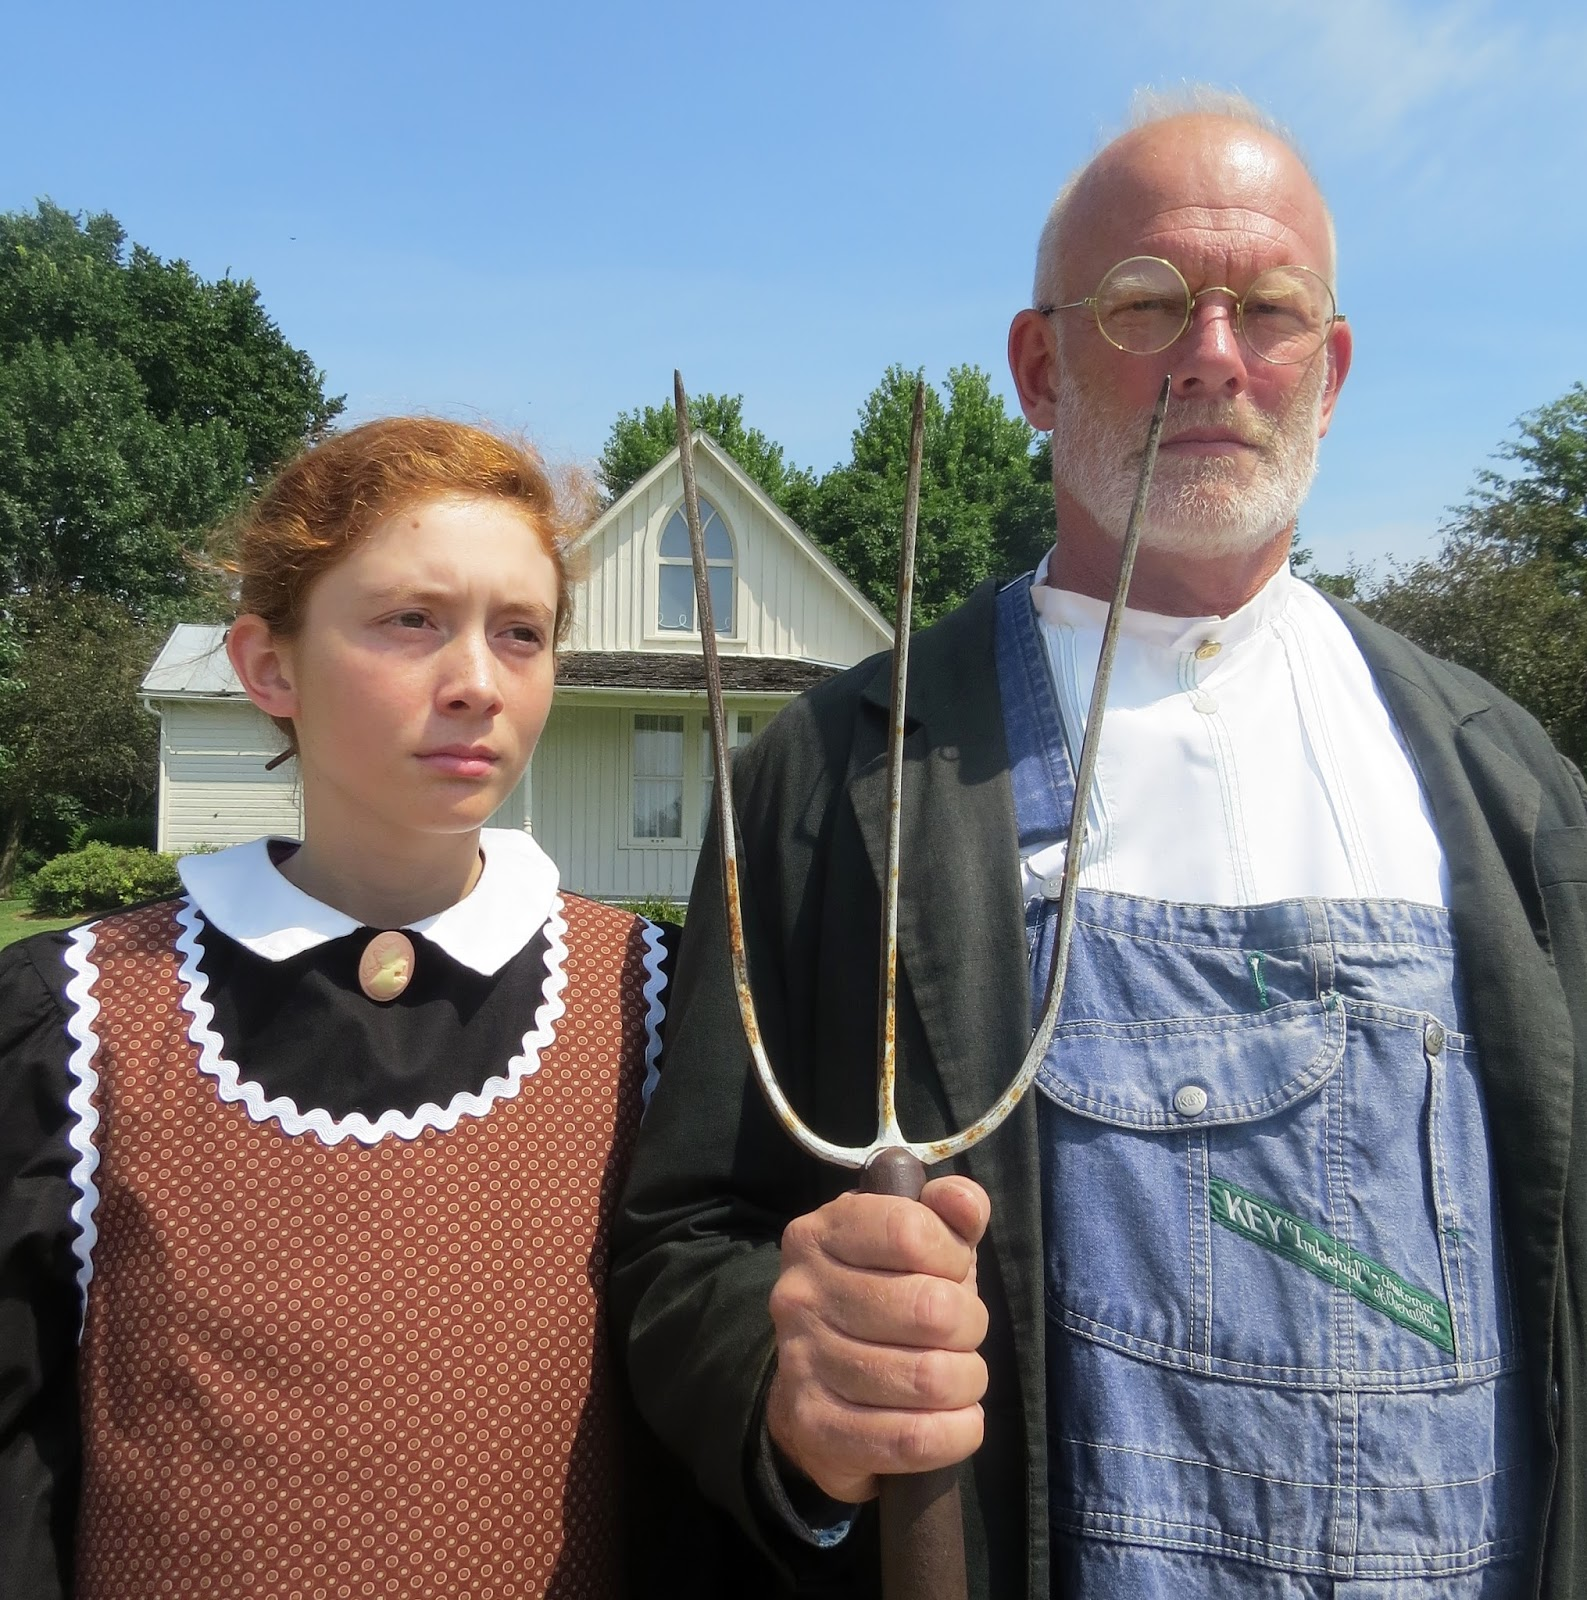 A Welcome Center Is Nearby Filled With Information About The House Painting And Artist Many Parodies Of American Gothic